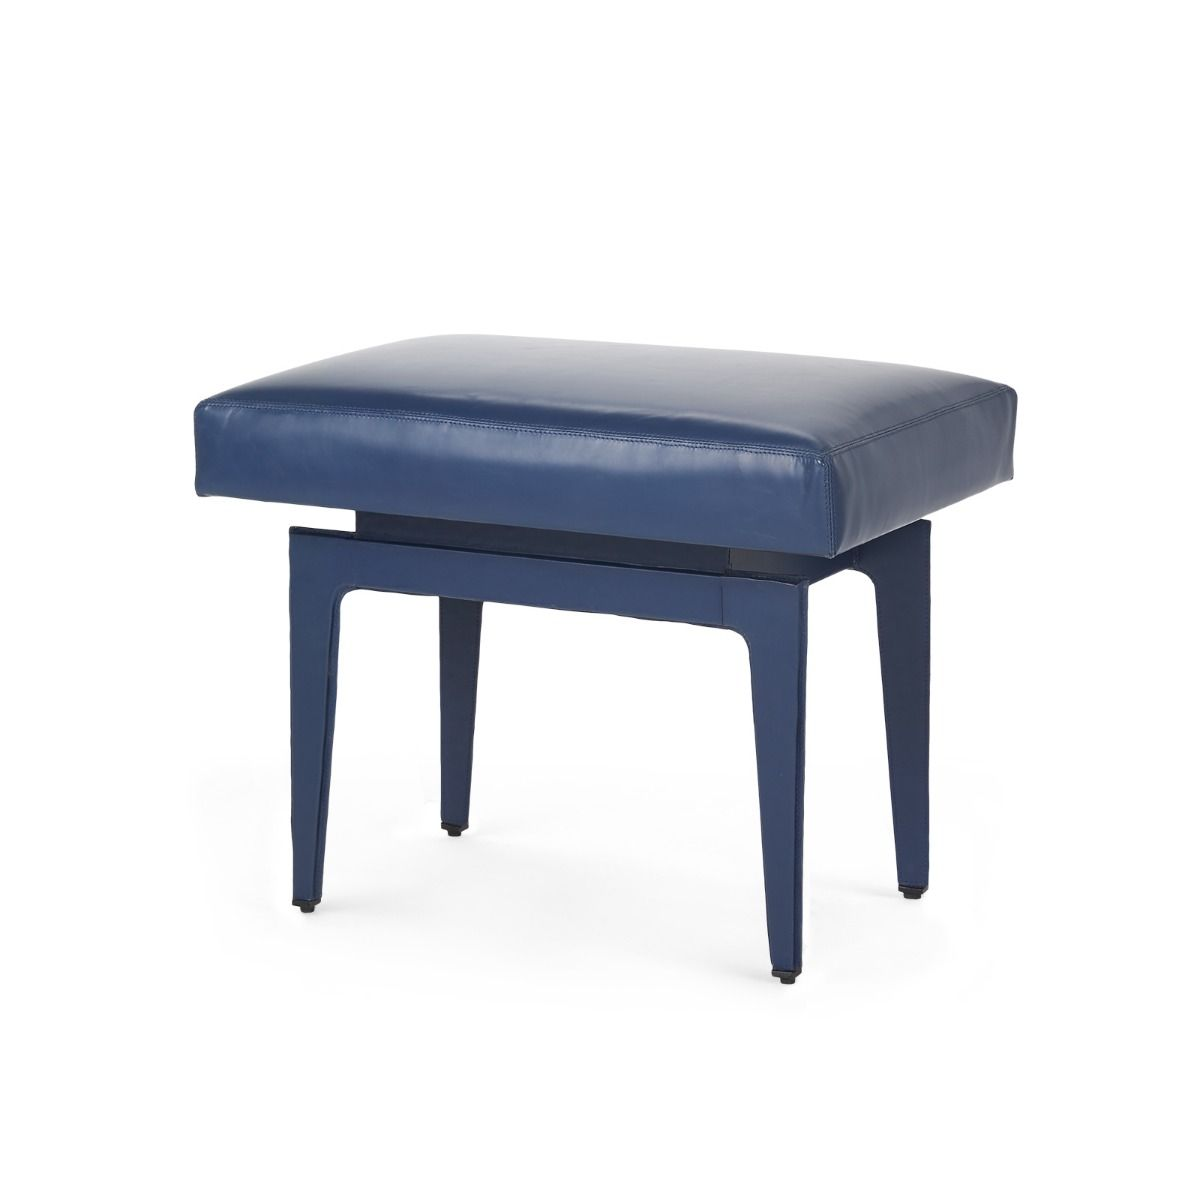 Bungalow 5 - Winston Stool - Navy Blue